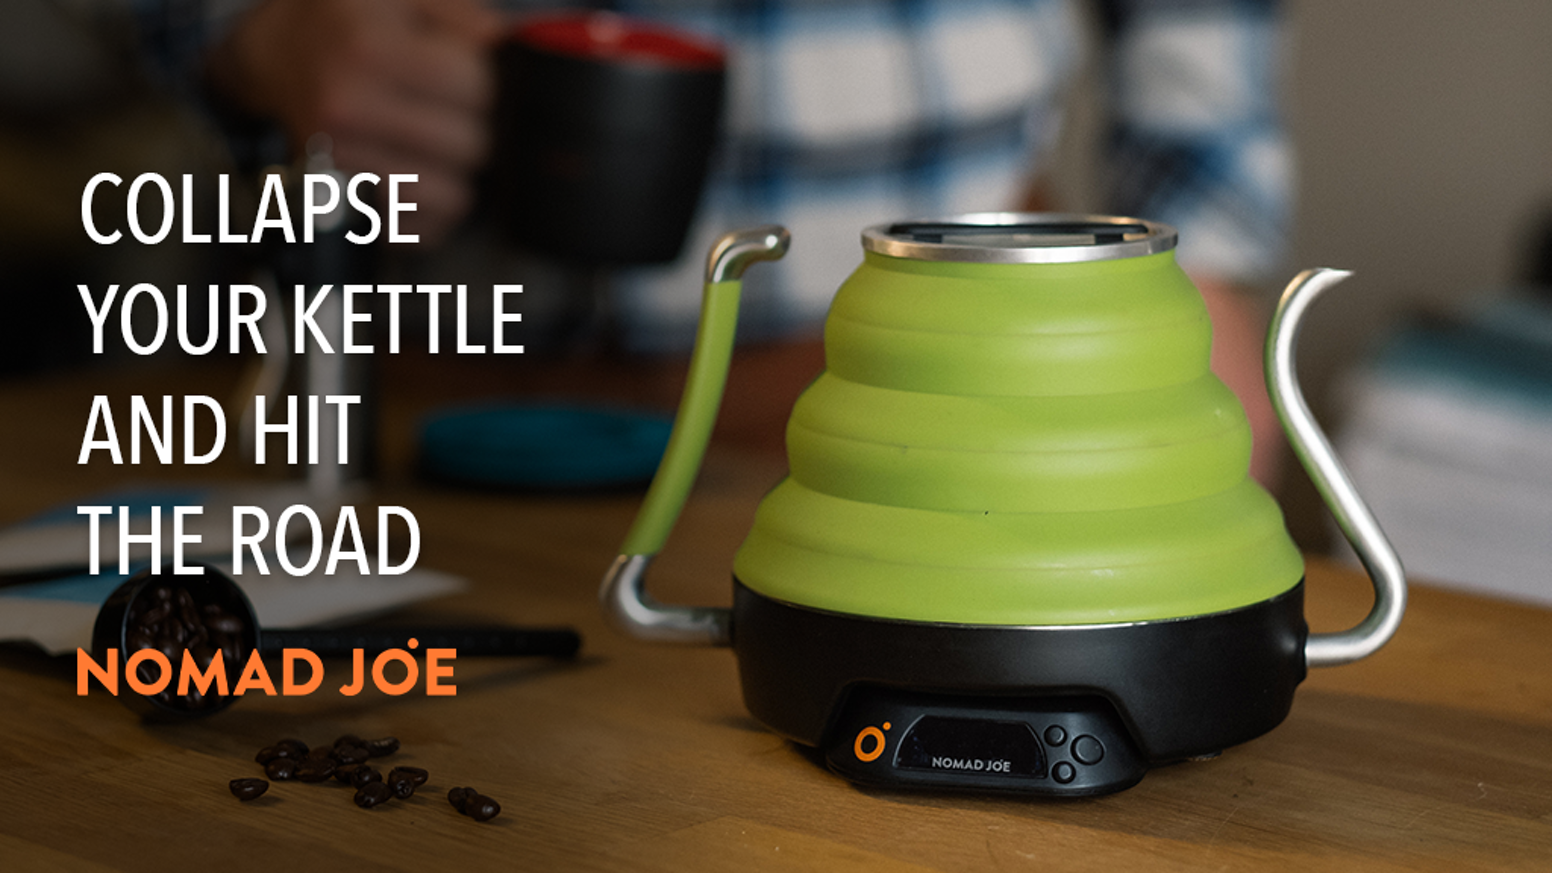 This portable electric kettle conveniently makes coffee or tea and then collapses down for travel or compact storage